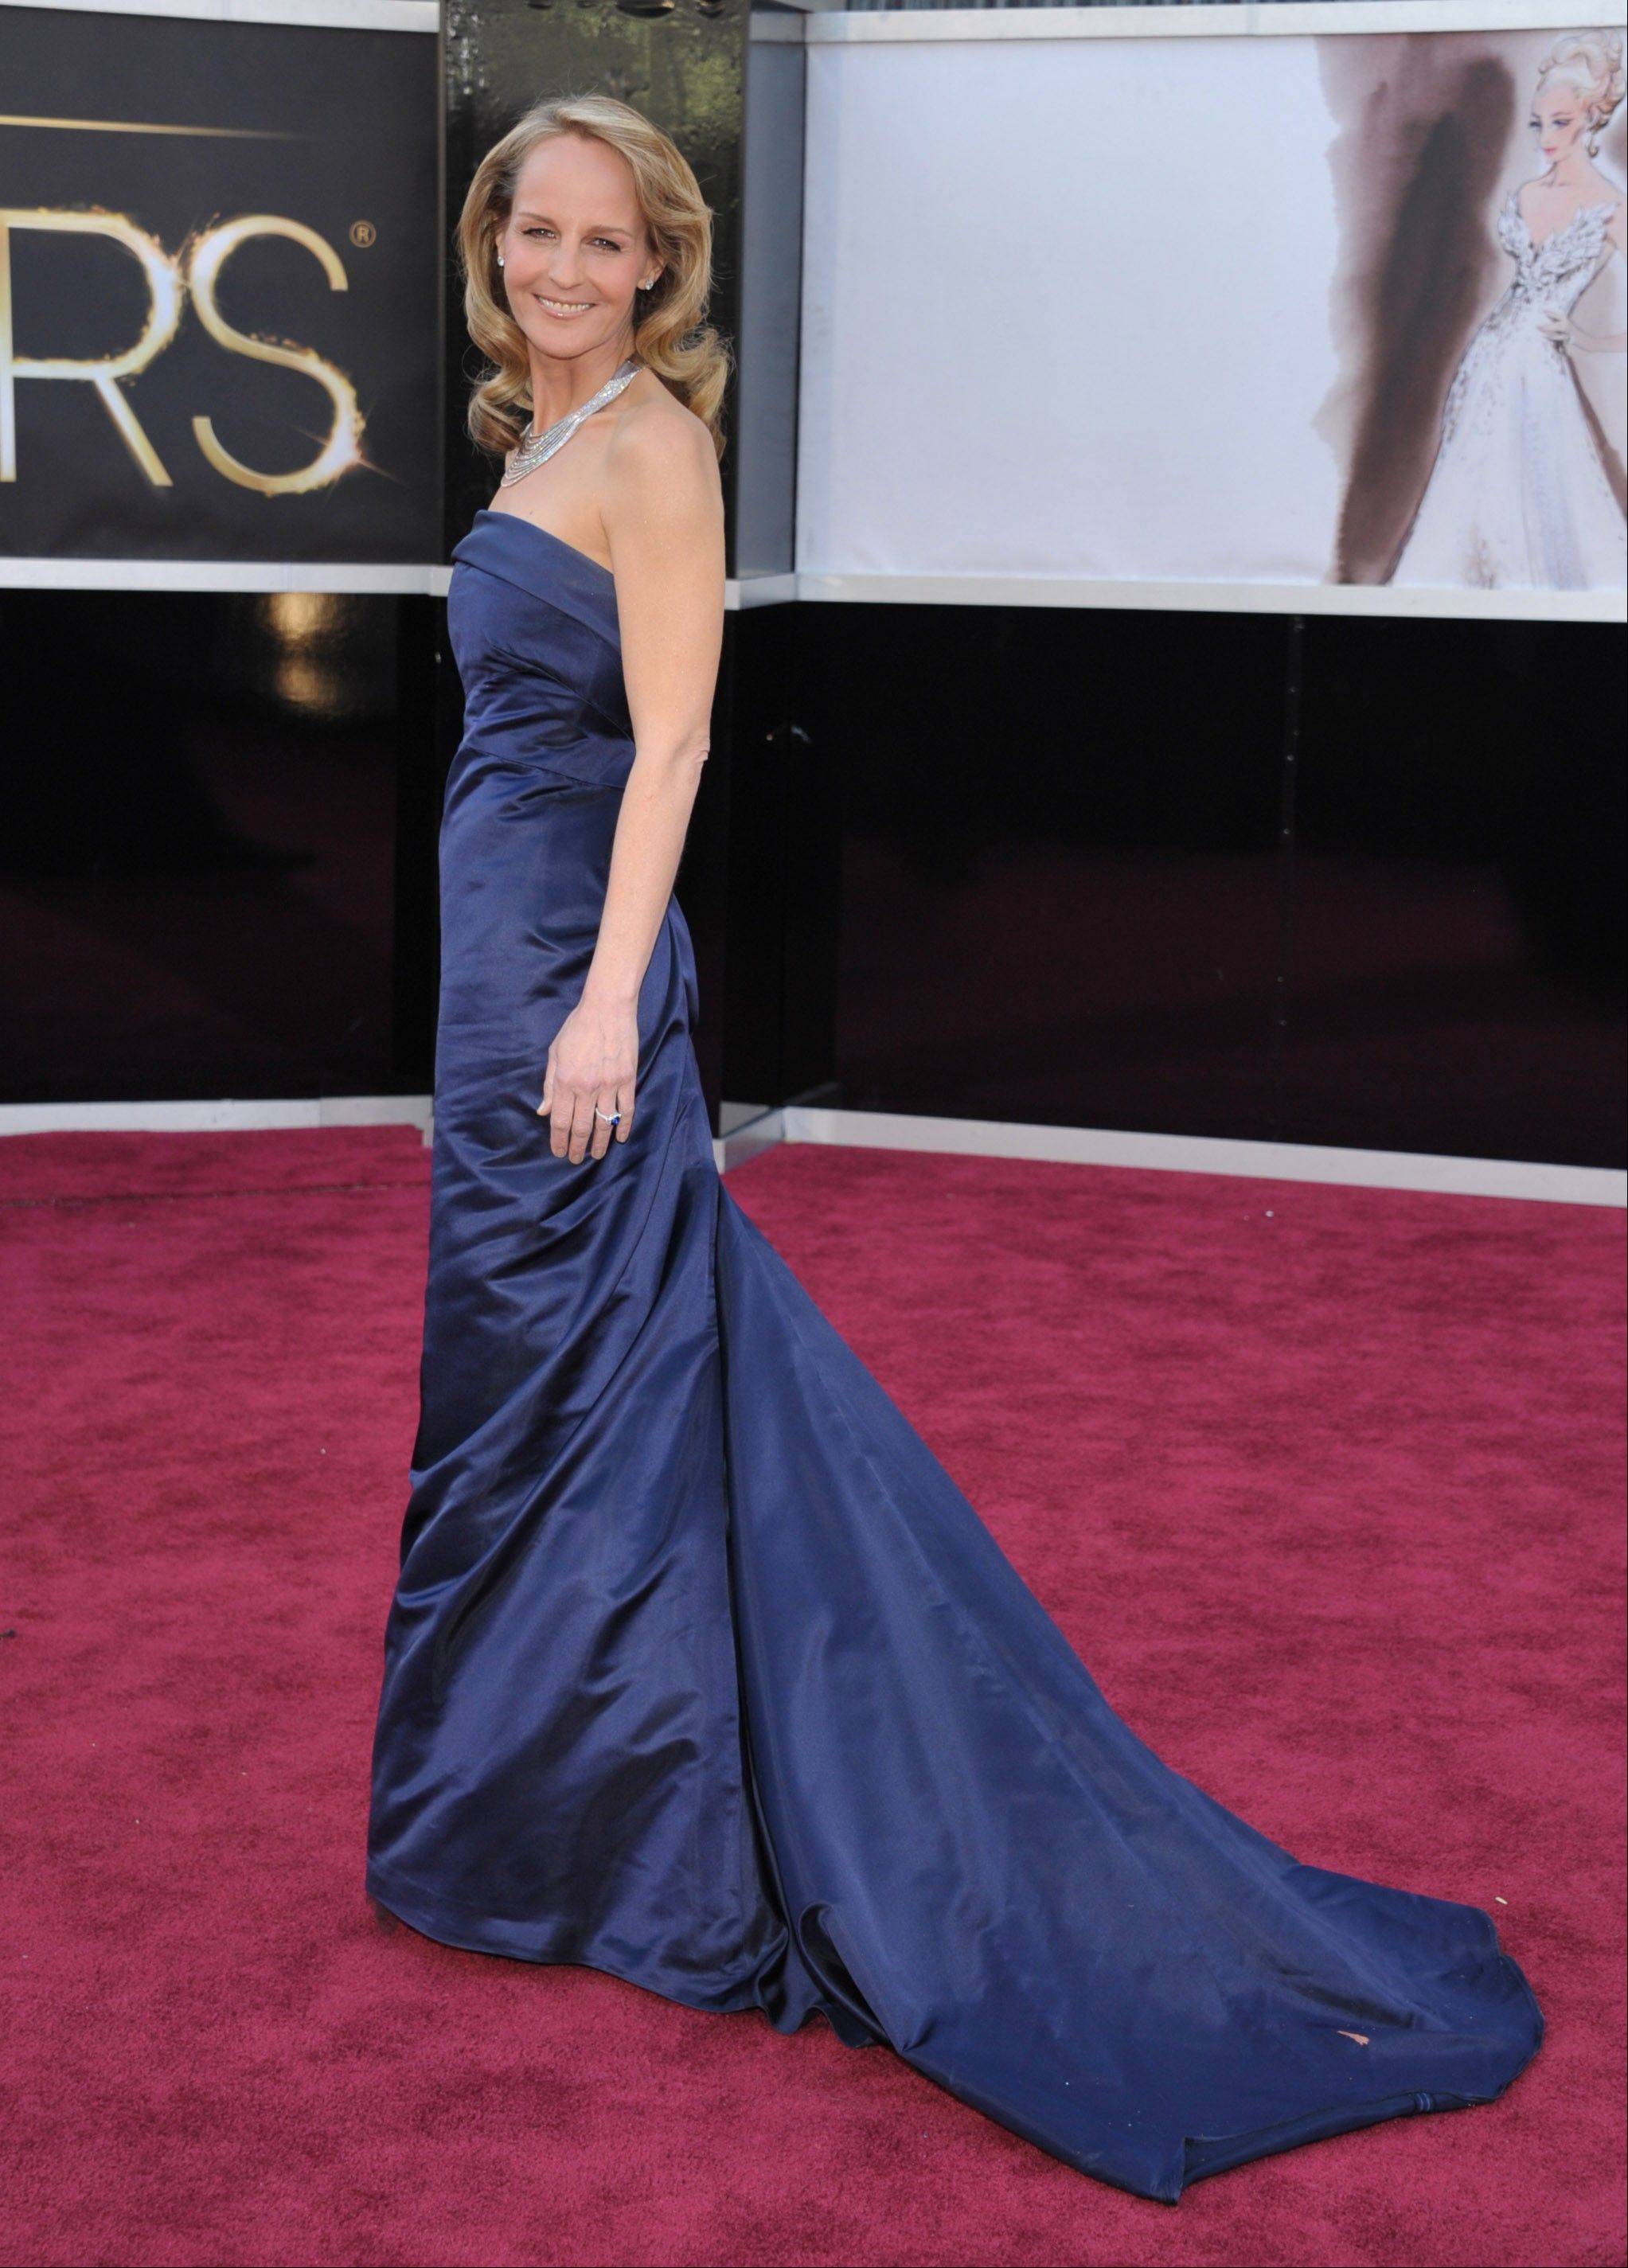 Oscar winner Helen Hunt goes glam with this beautiful blue gown.